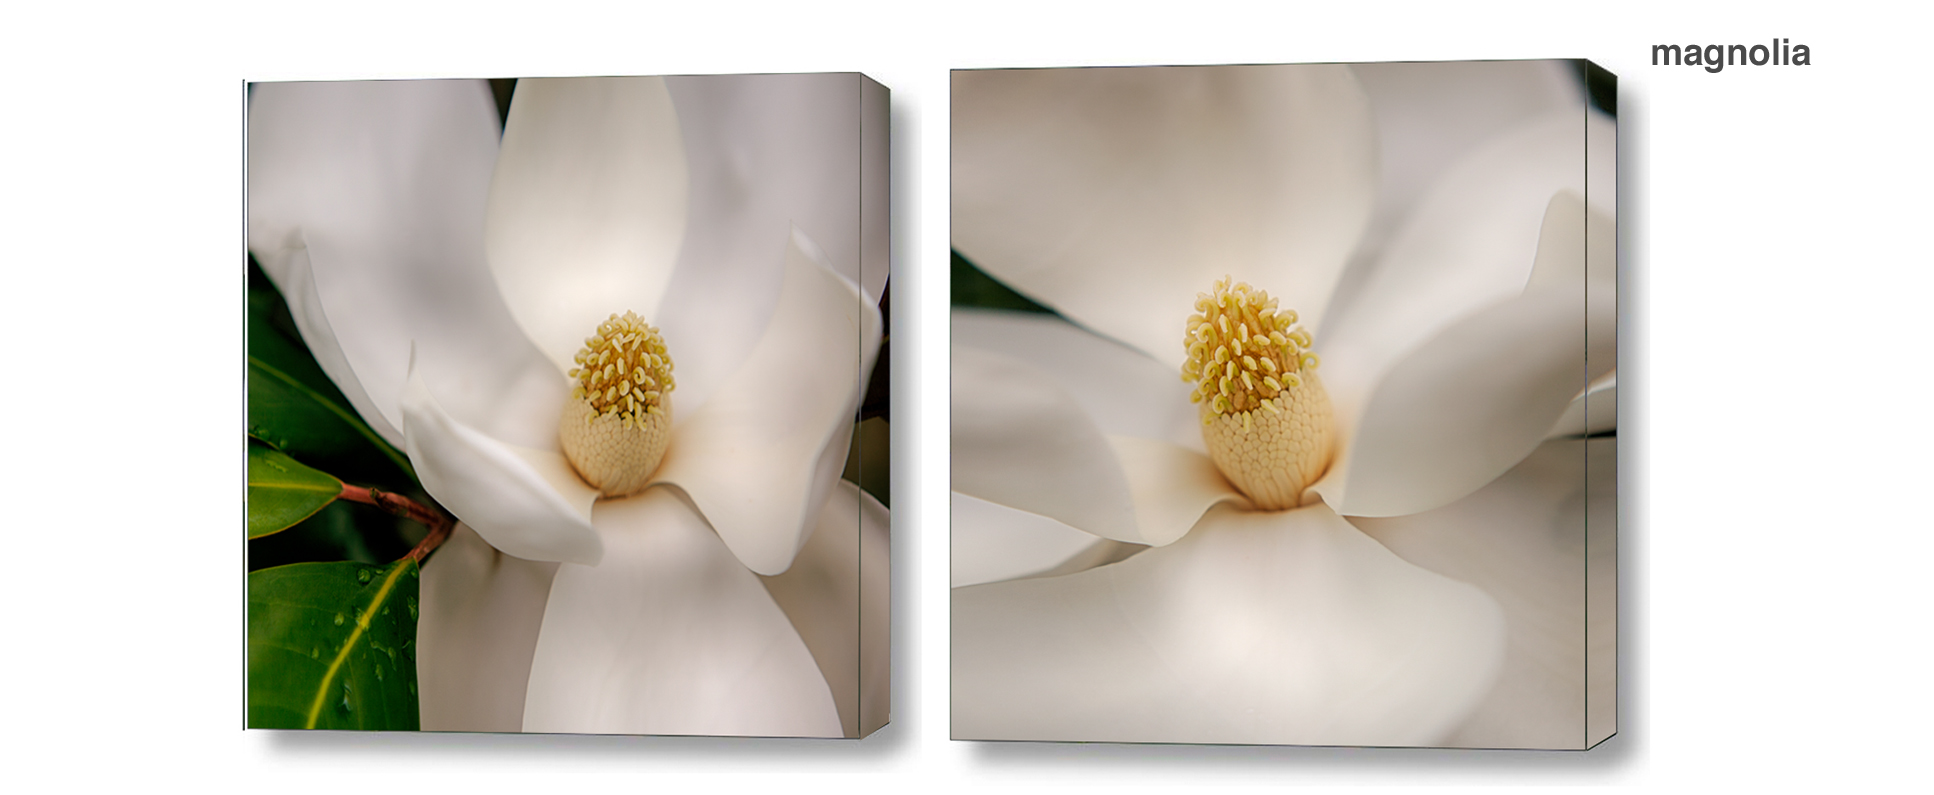 magnolia series - Floral Series Wall Decor Macro Photography Matted & Giclée Canvas Prints